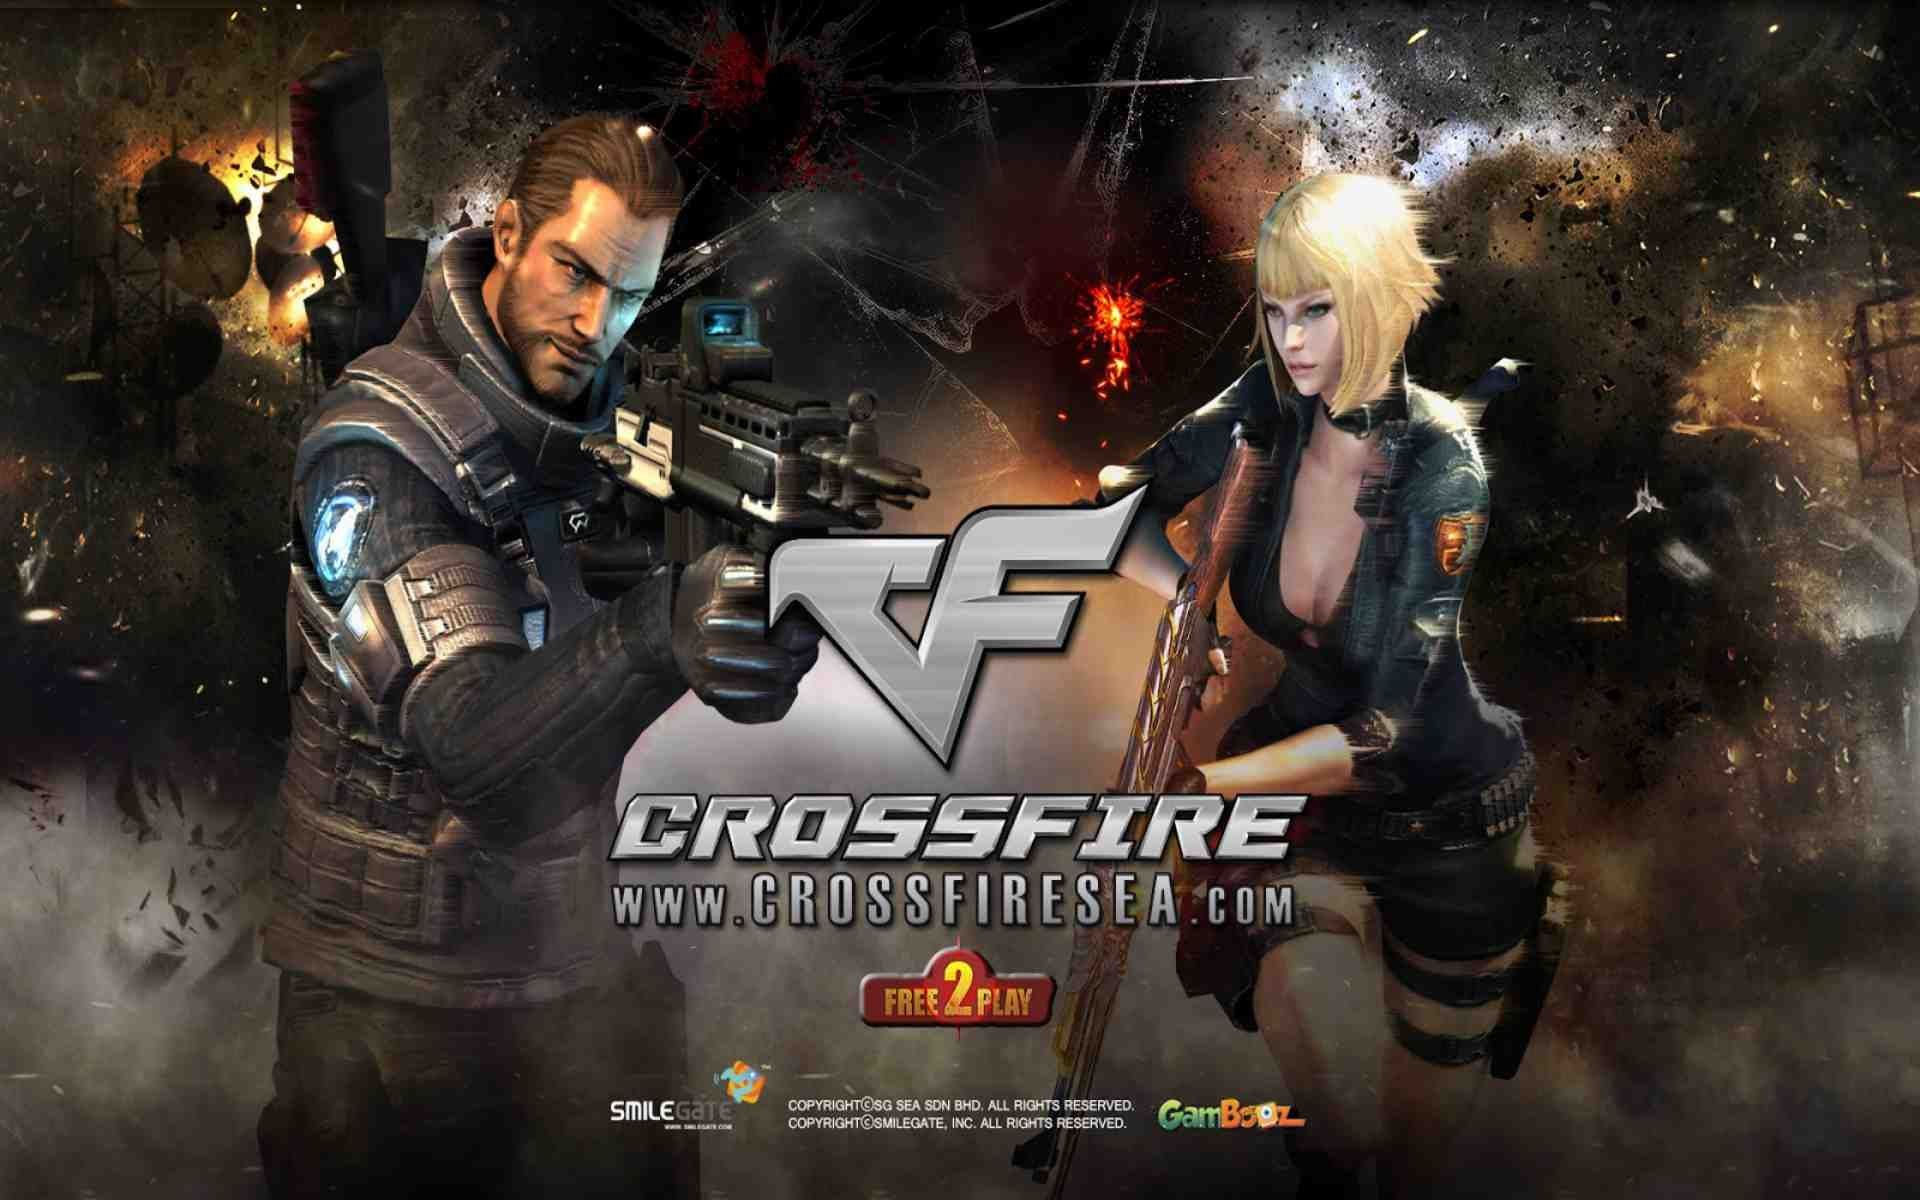 Crossfire Hd Wallpapers Backgrounds Wallpaper 550 730 Crossfire Wallpaper 31 Wallpapers Adorable Wallpapers Crossfire Hinh Nền Game